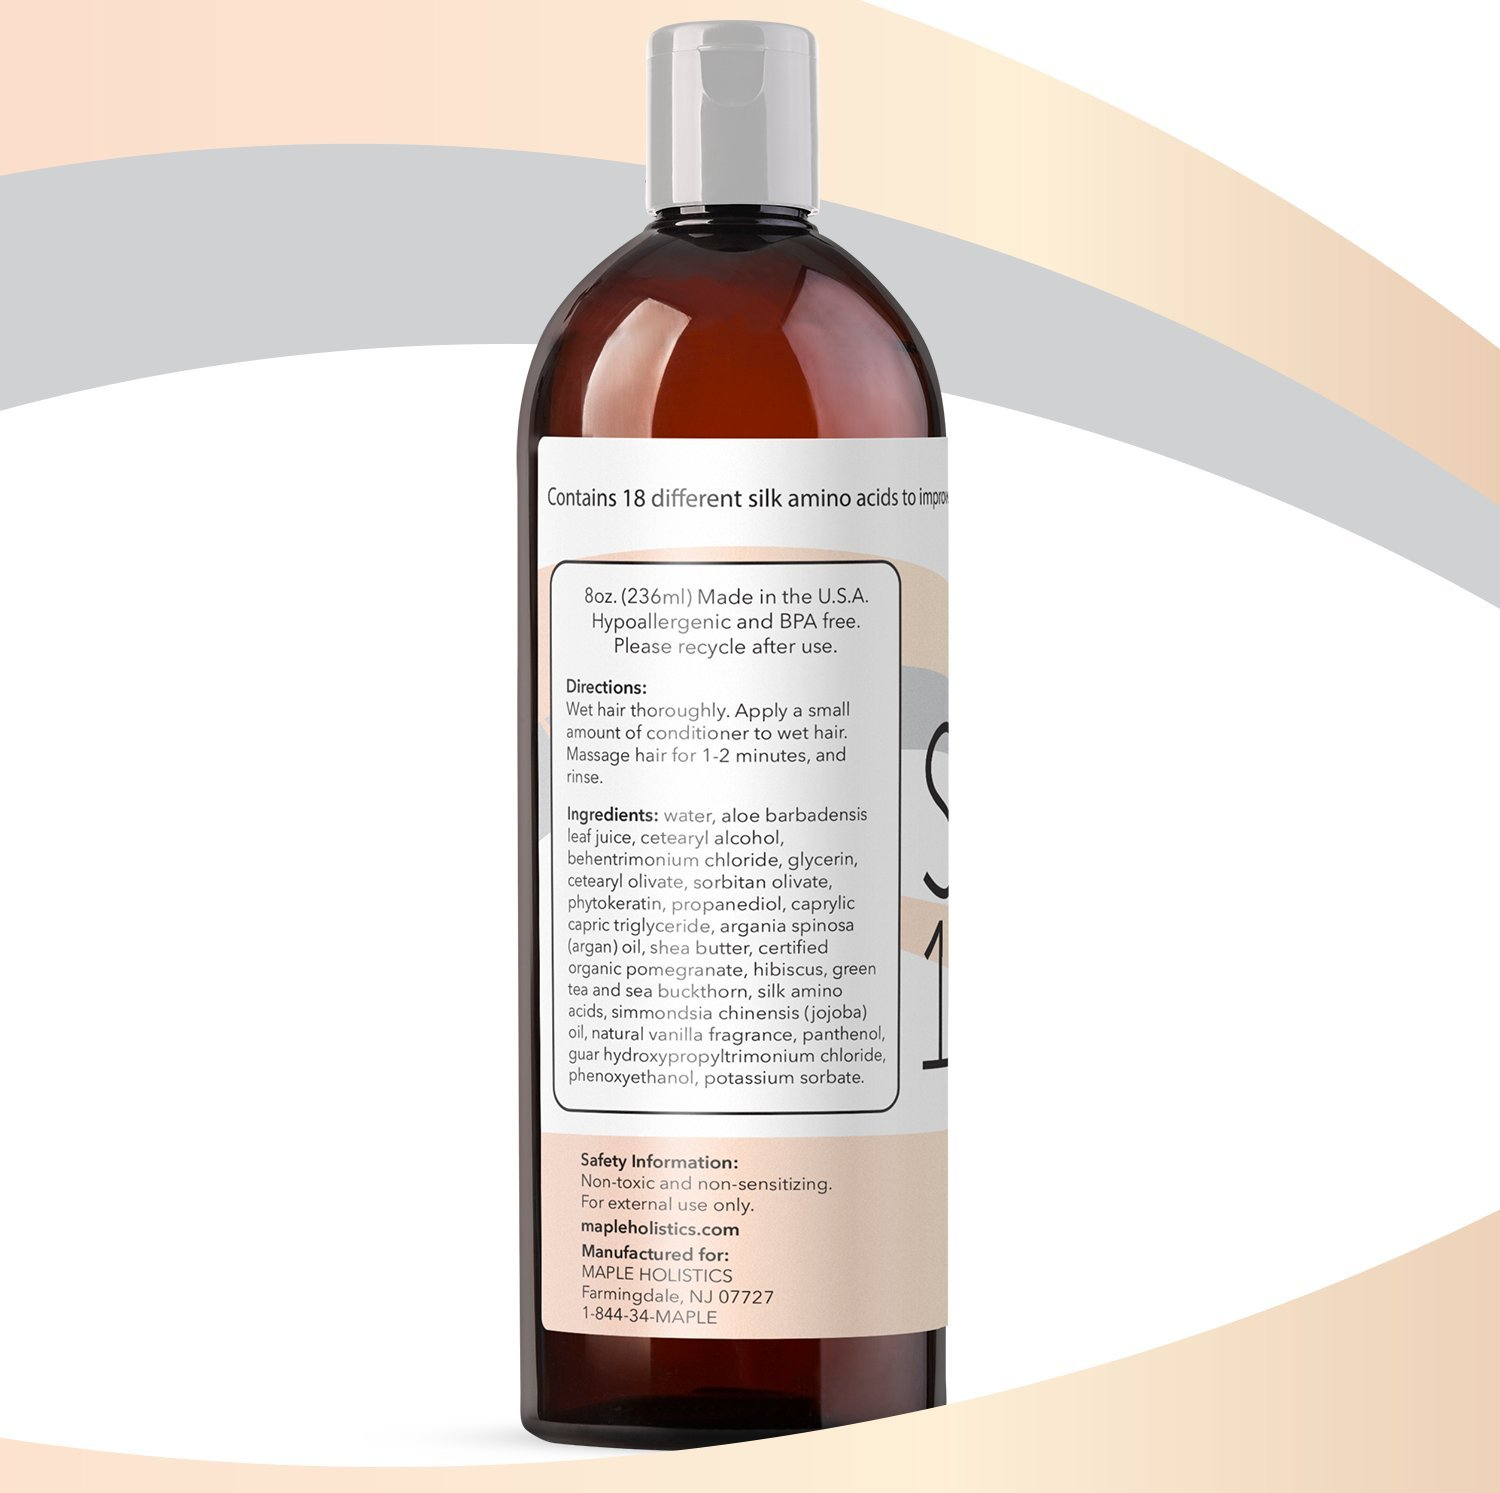 Silk18 Natural Hair Conditioner Argan Oil Sulfate Free Treatment for Dry and Damaged Hair Silk Amino Acids Jojoba & Keratin All Hair Types Women & Men & Teens Safe for Color Treated Hair by Maple Holistics (Image #5)